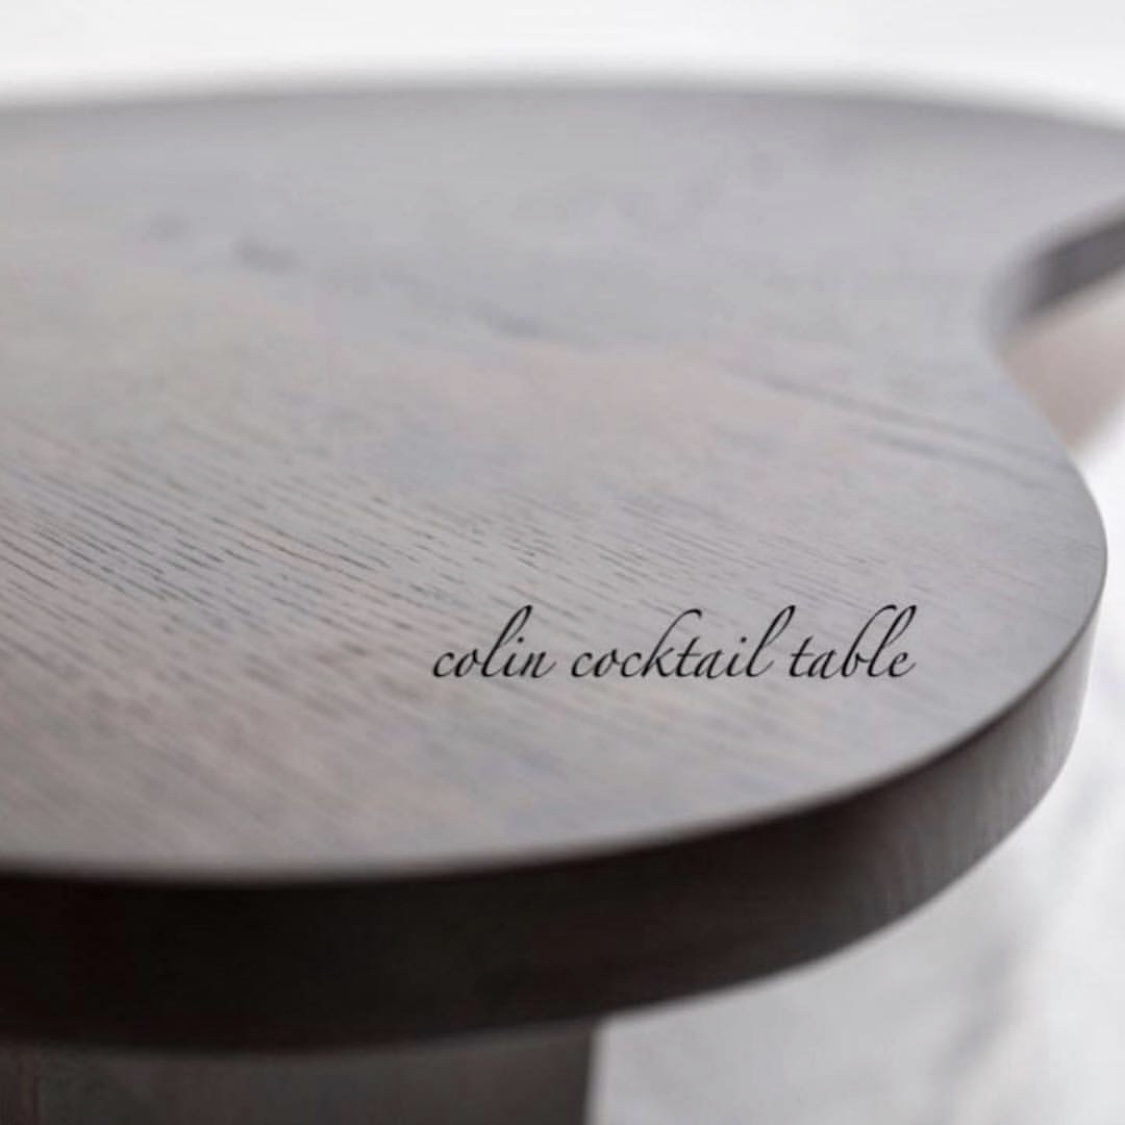 colin cocktail table